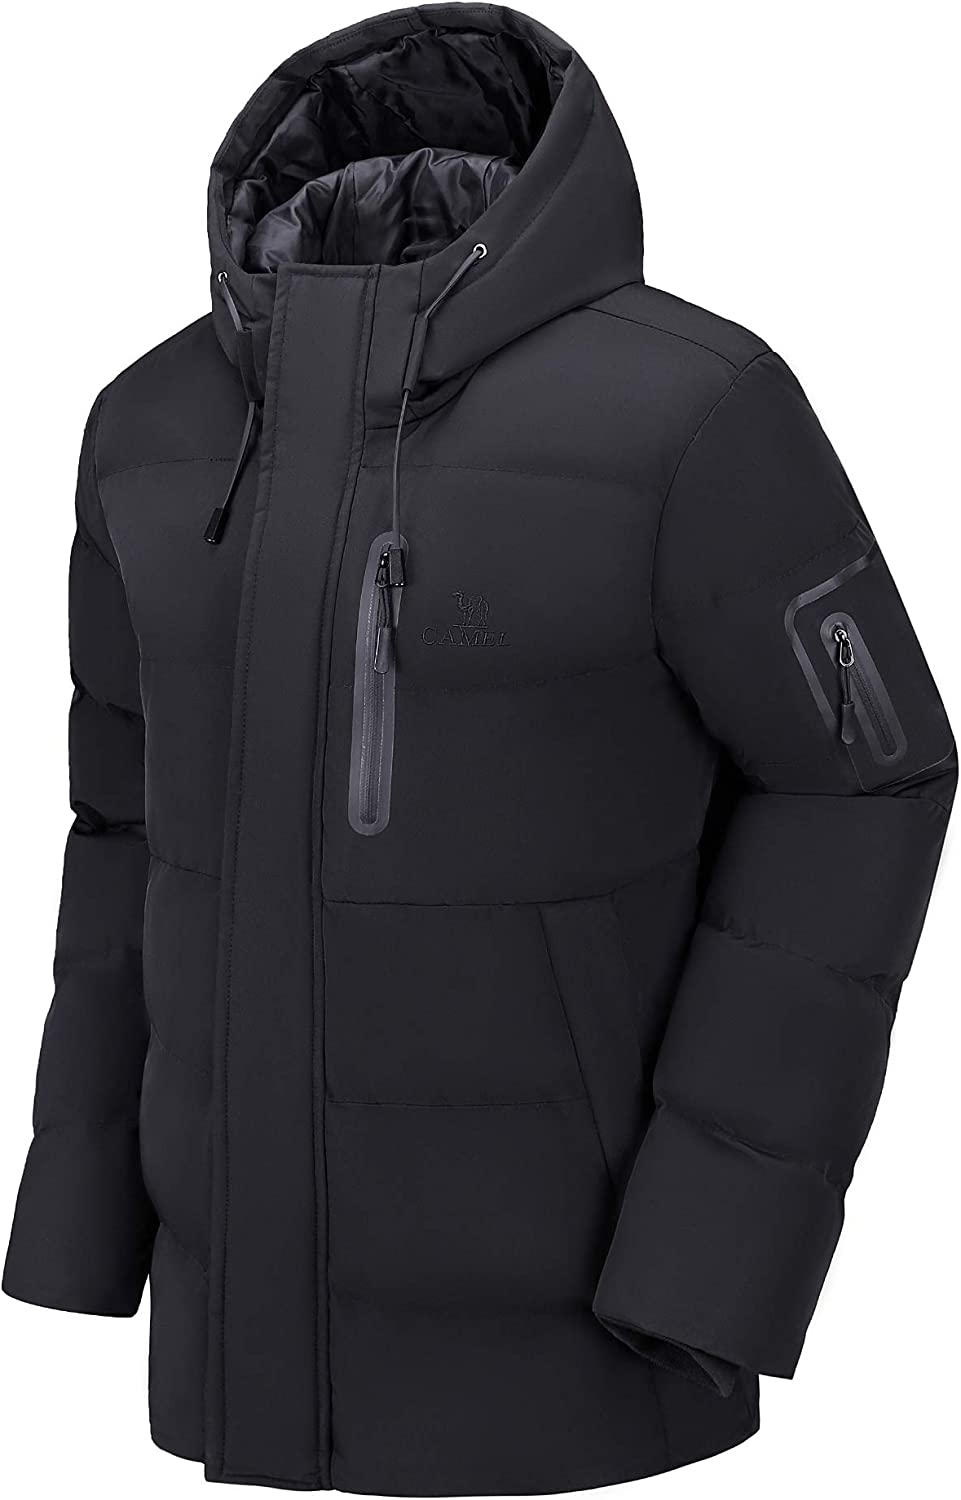 CAMEL Men Puffer Jacket with Hooded Parkas Thicken Padded Jacket Windproof Outdoor for Winter Coat: Clothing